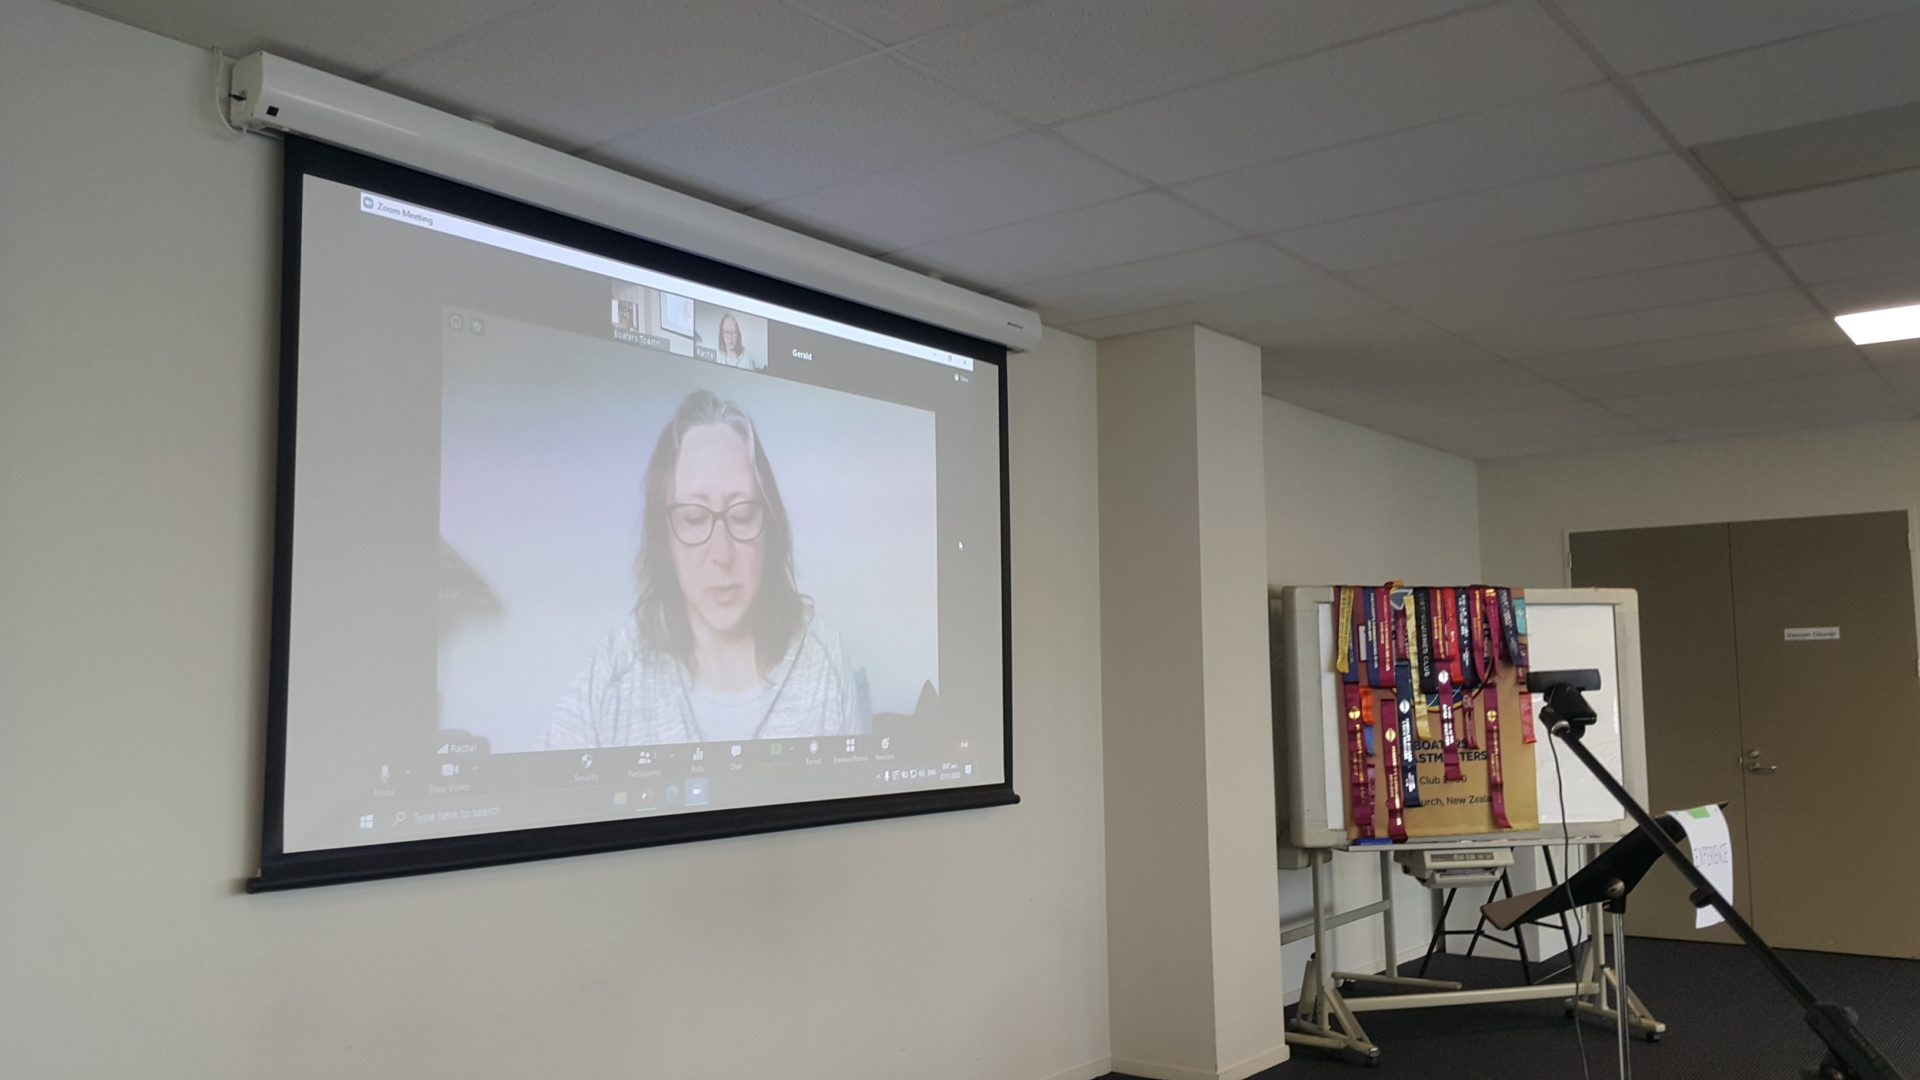 Woman projected speaking via Zoom on a screen